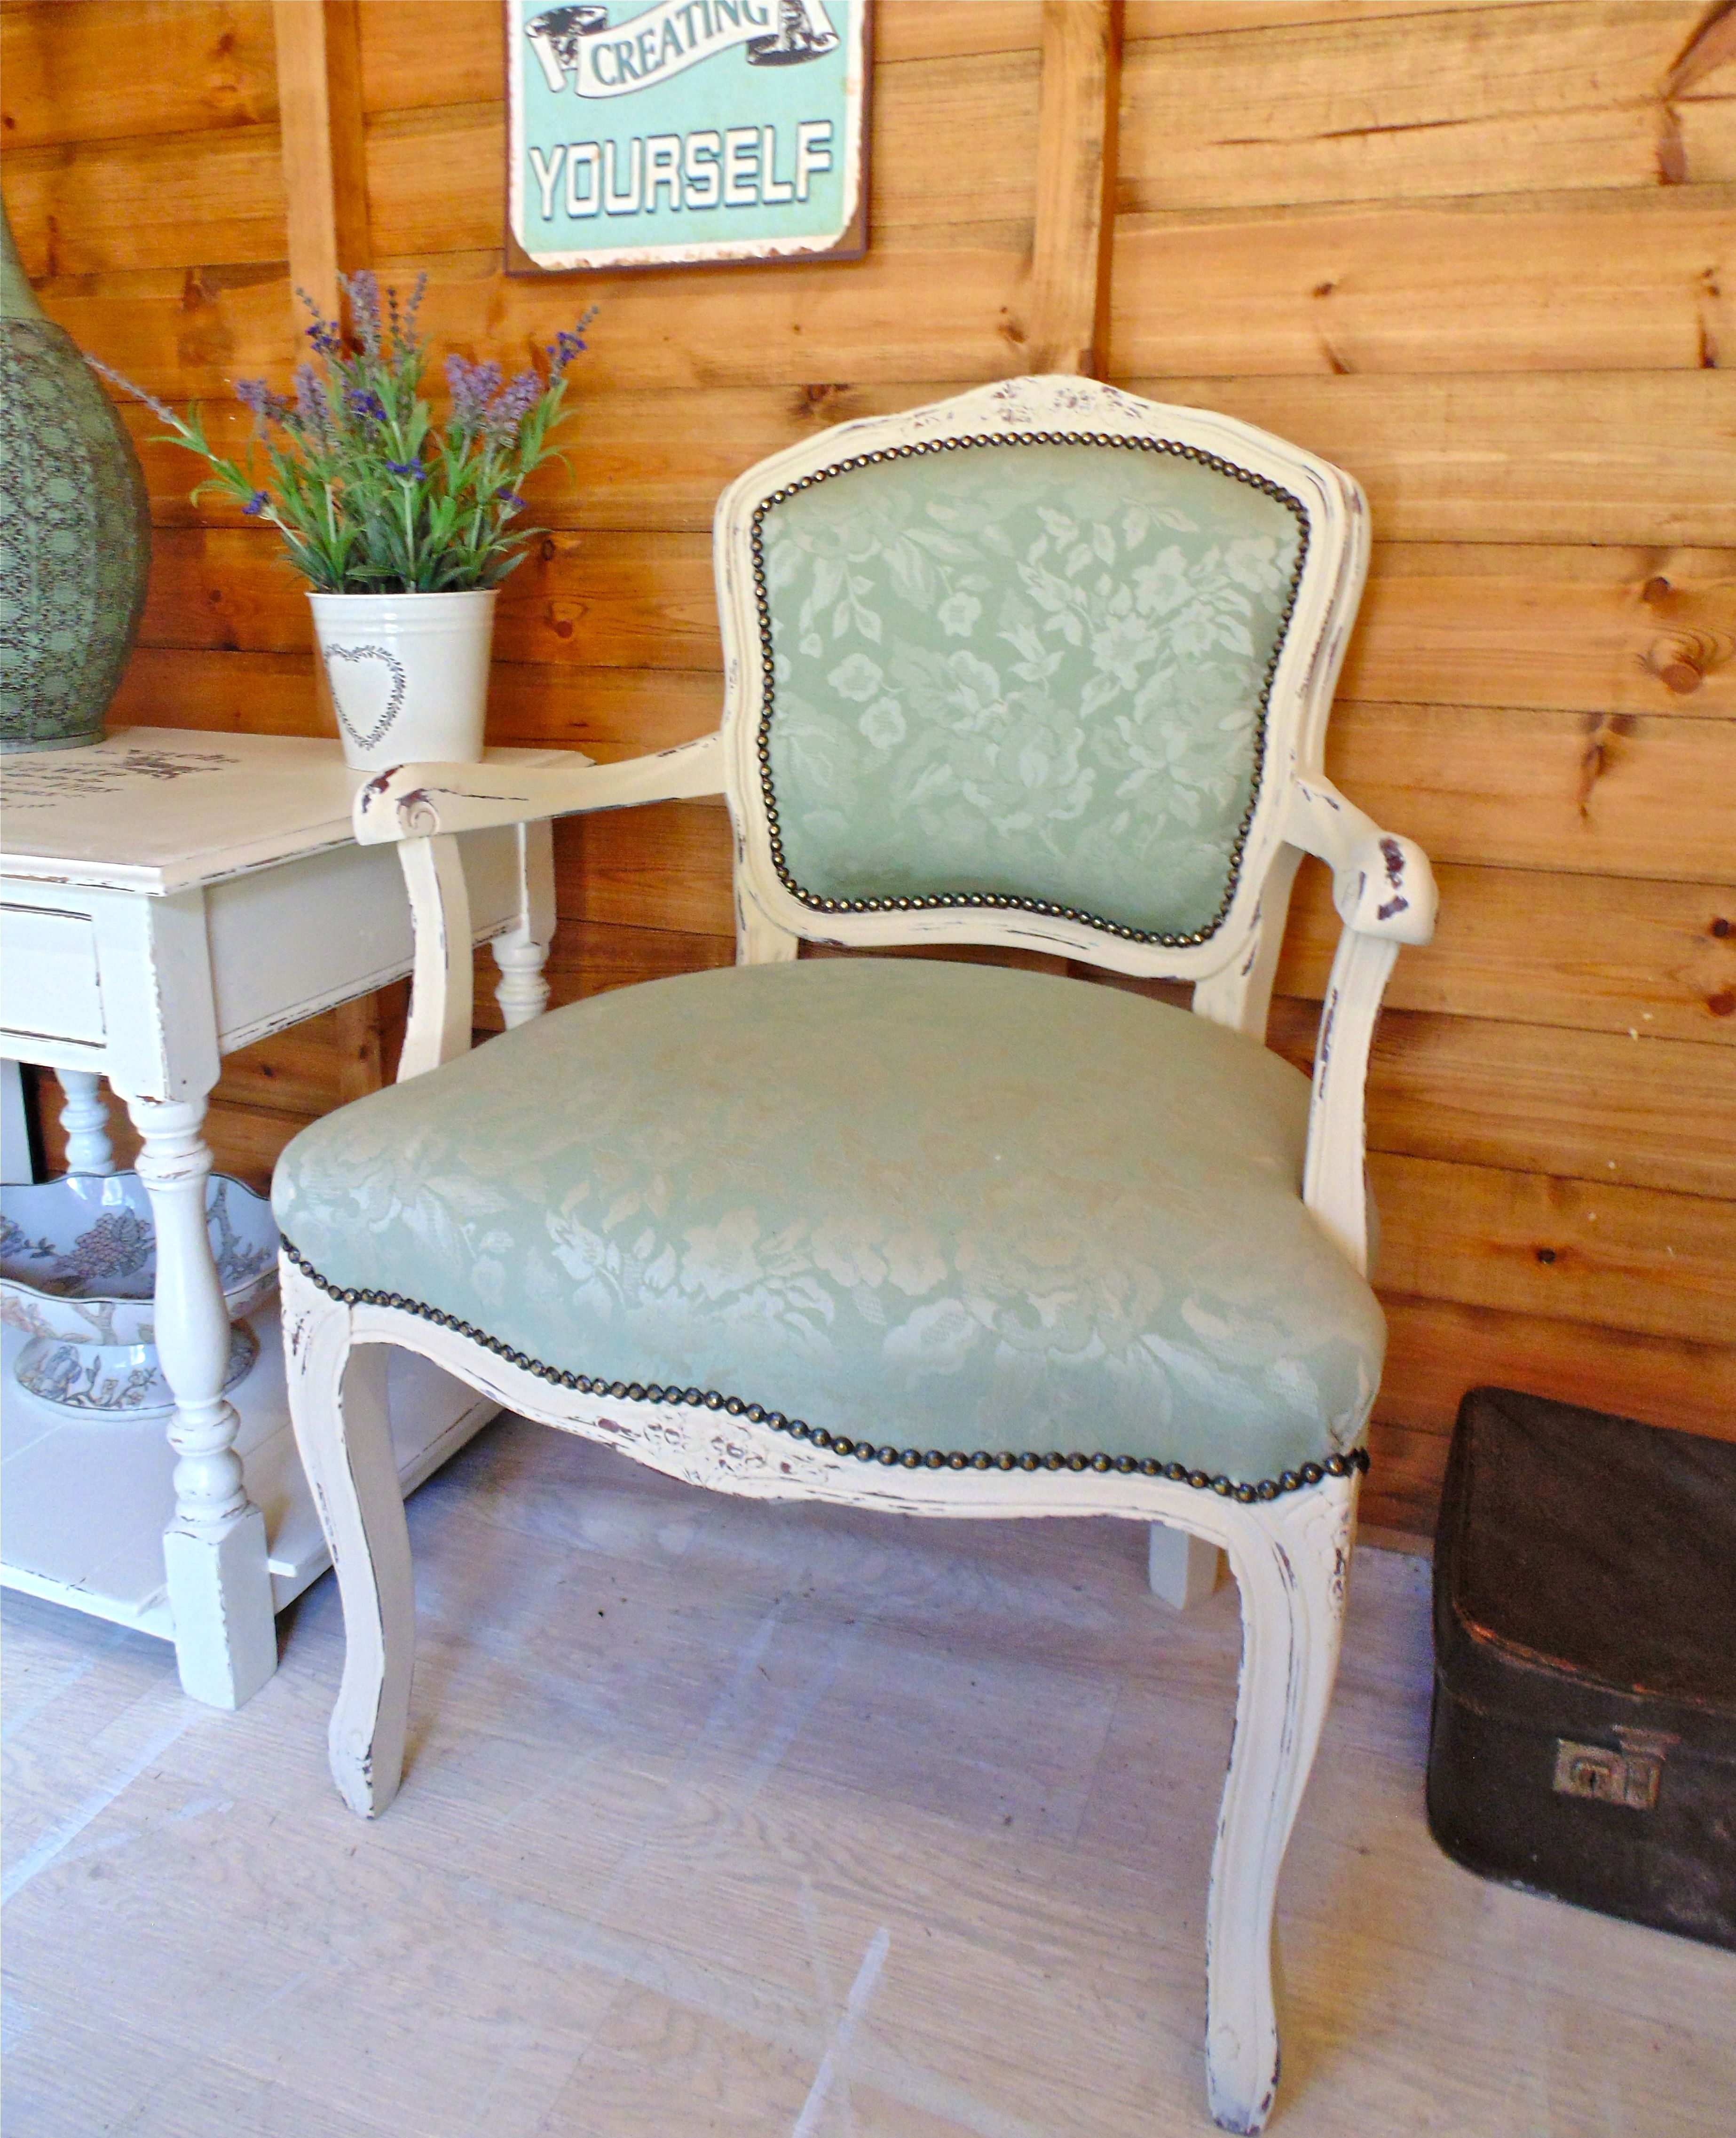 Beautiful Bedroom Chair in Duck Egg Blue Upholstery & Painted with